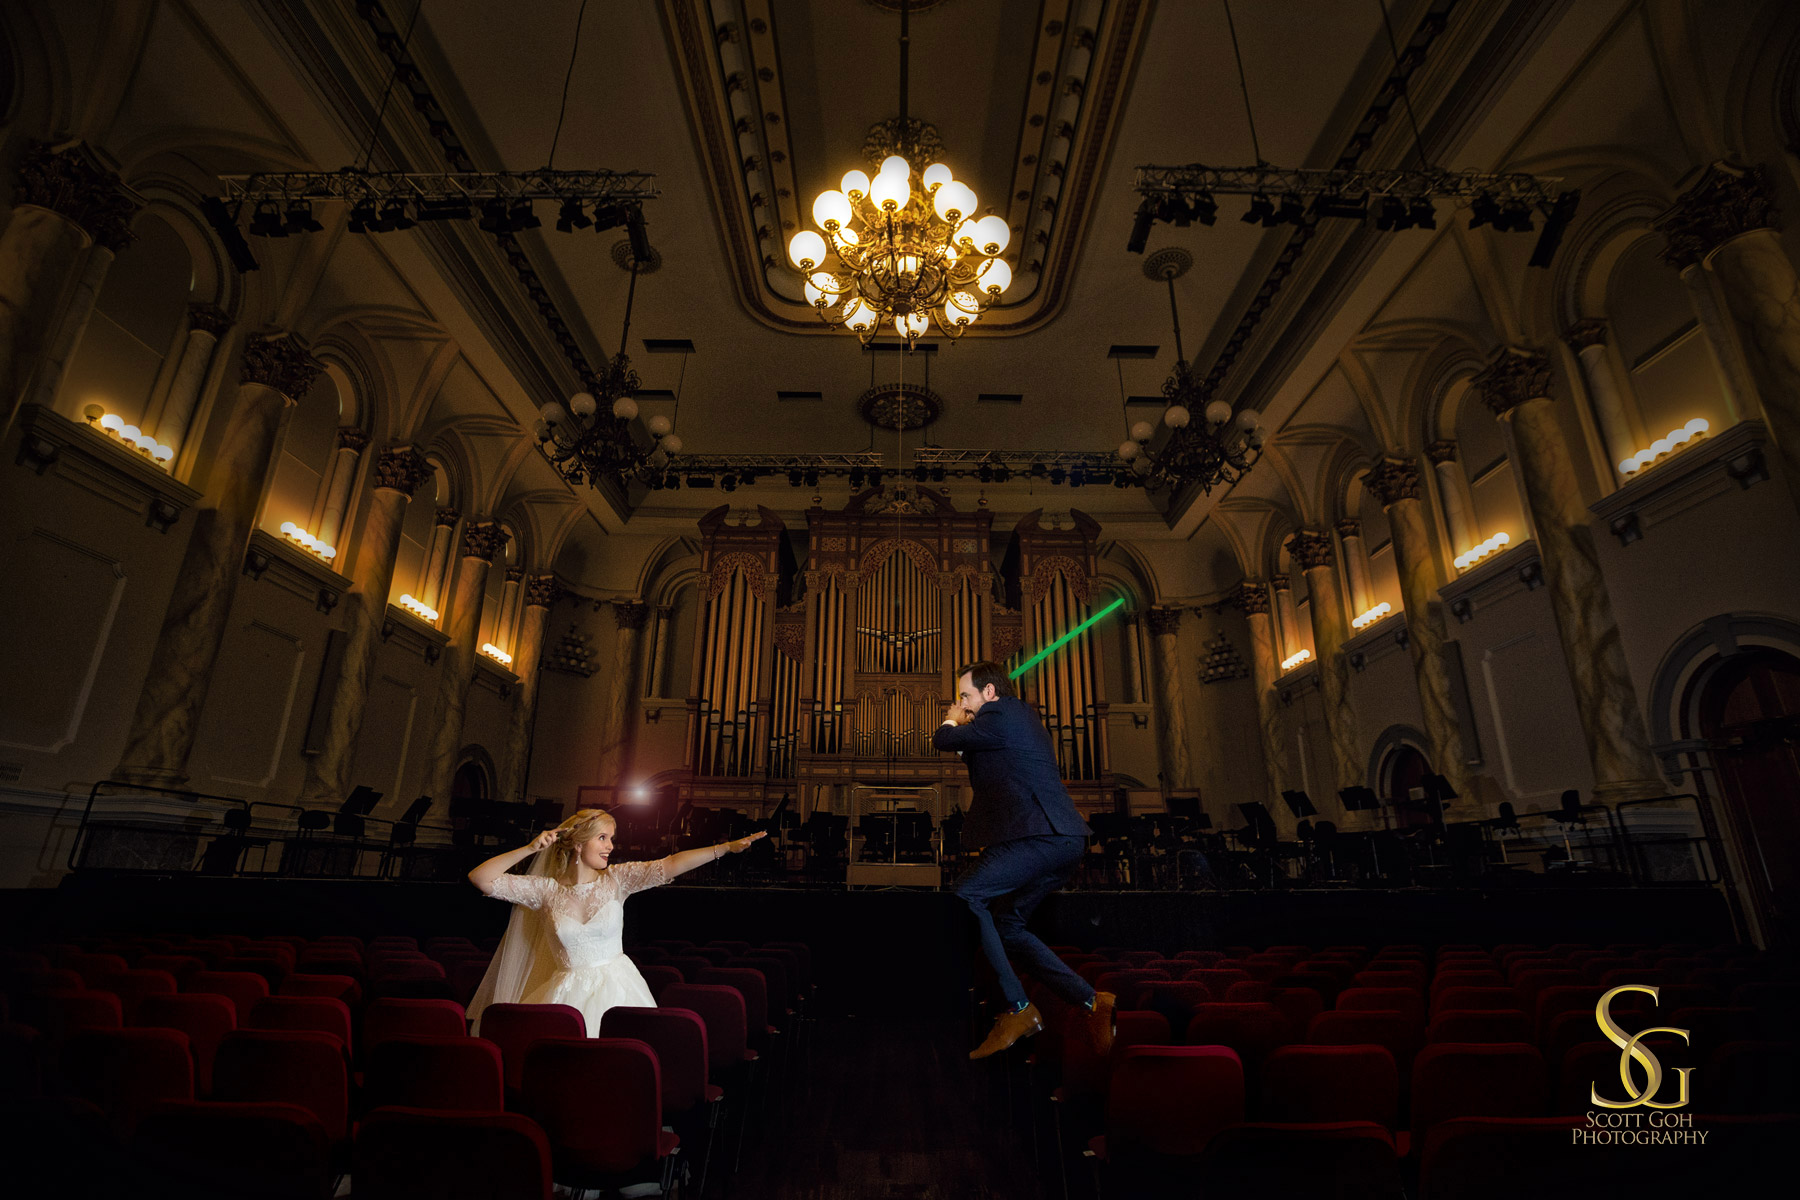 harry potter vs star war wedding photo